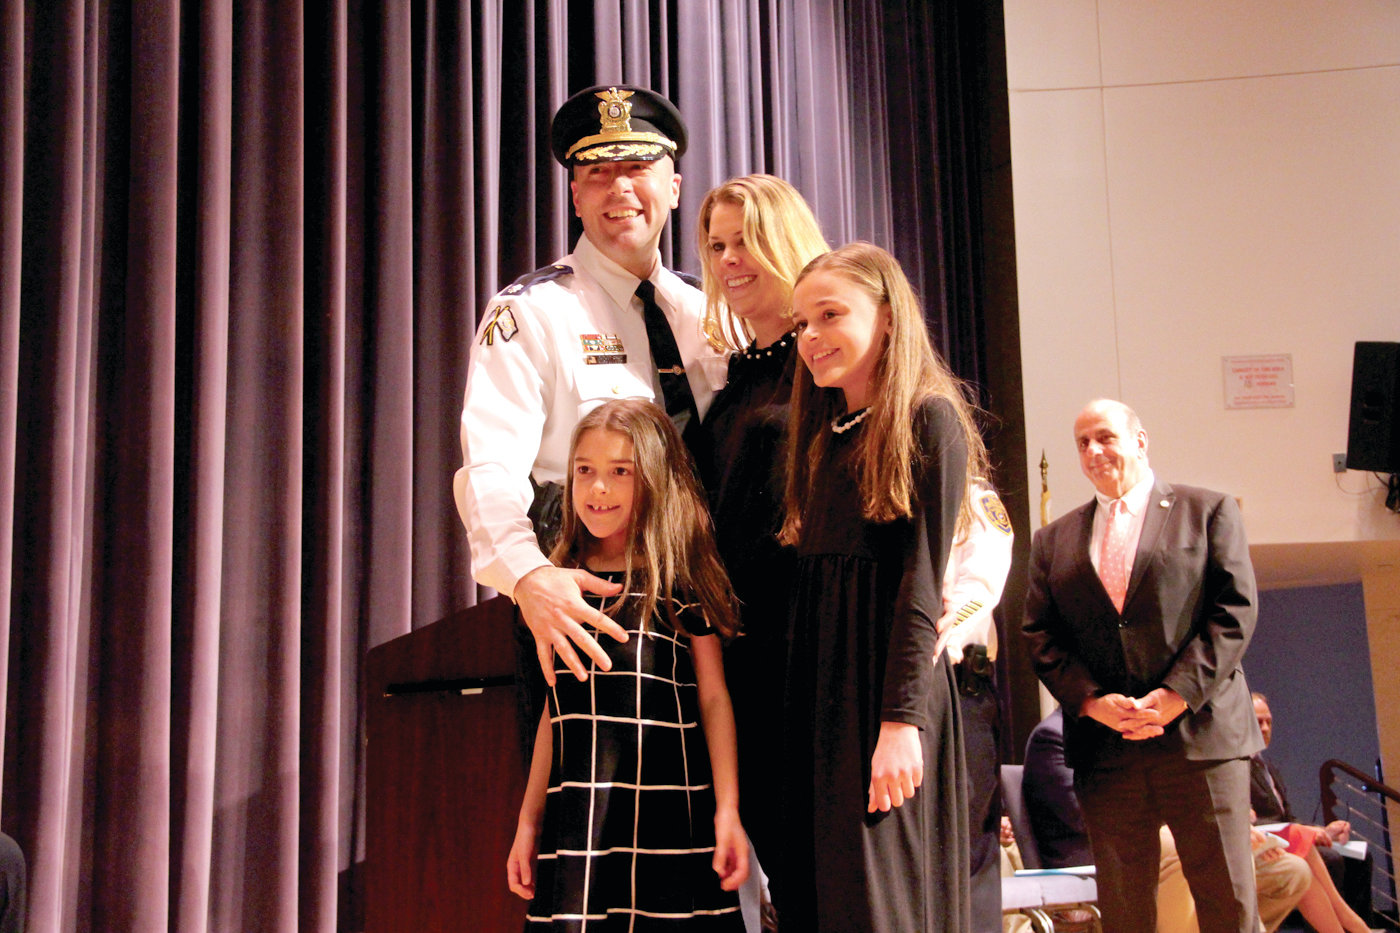 LOTS OF SUPPORT: Deputy Chief Mark Ullucci is joined by his wife, Sylvia, and daughters, Audrina and Sabrina, on stage at the ceremony.